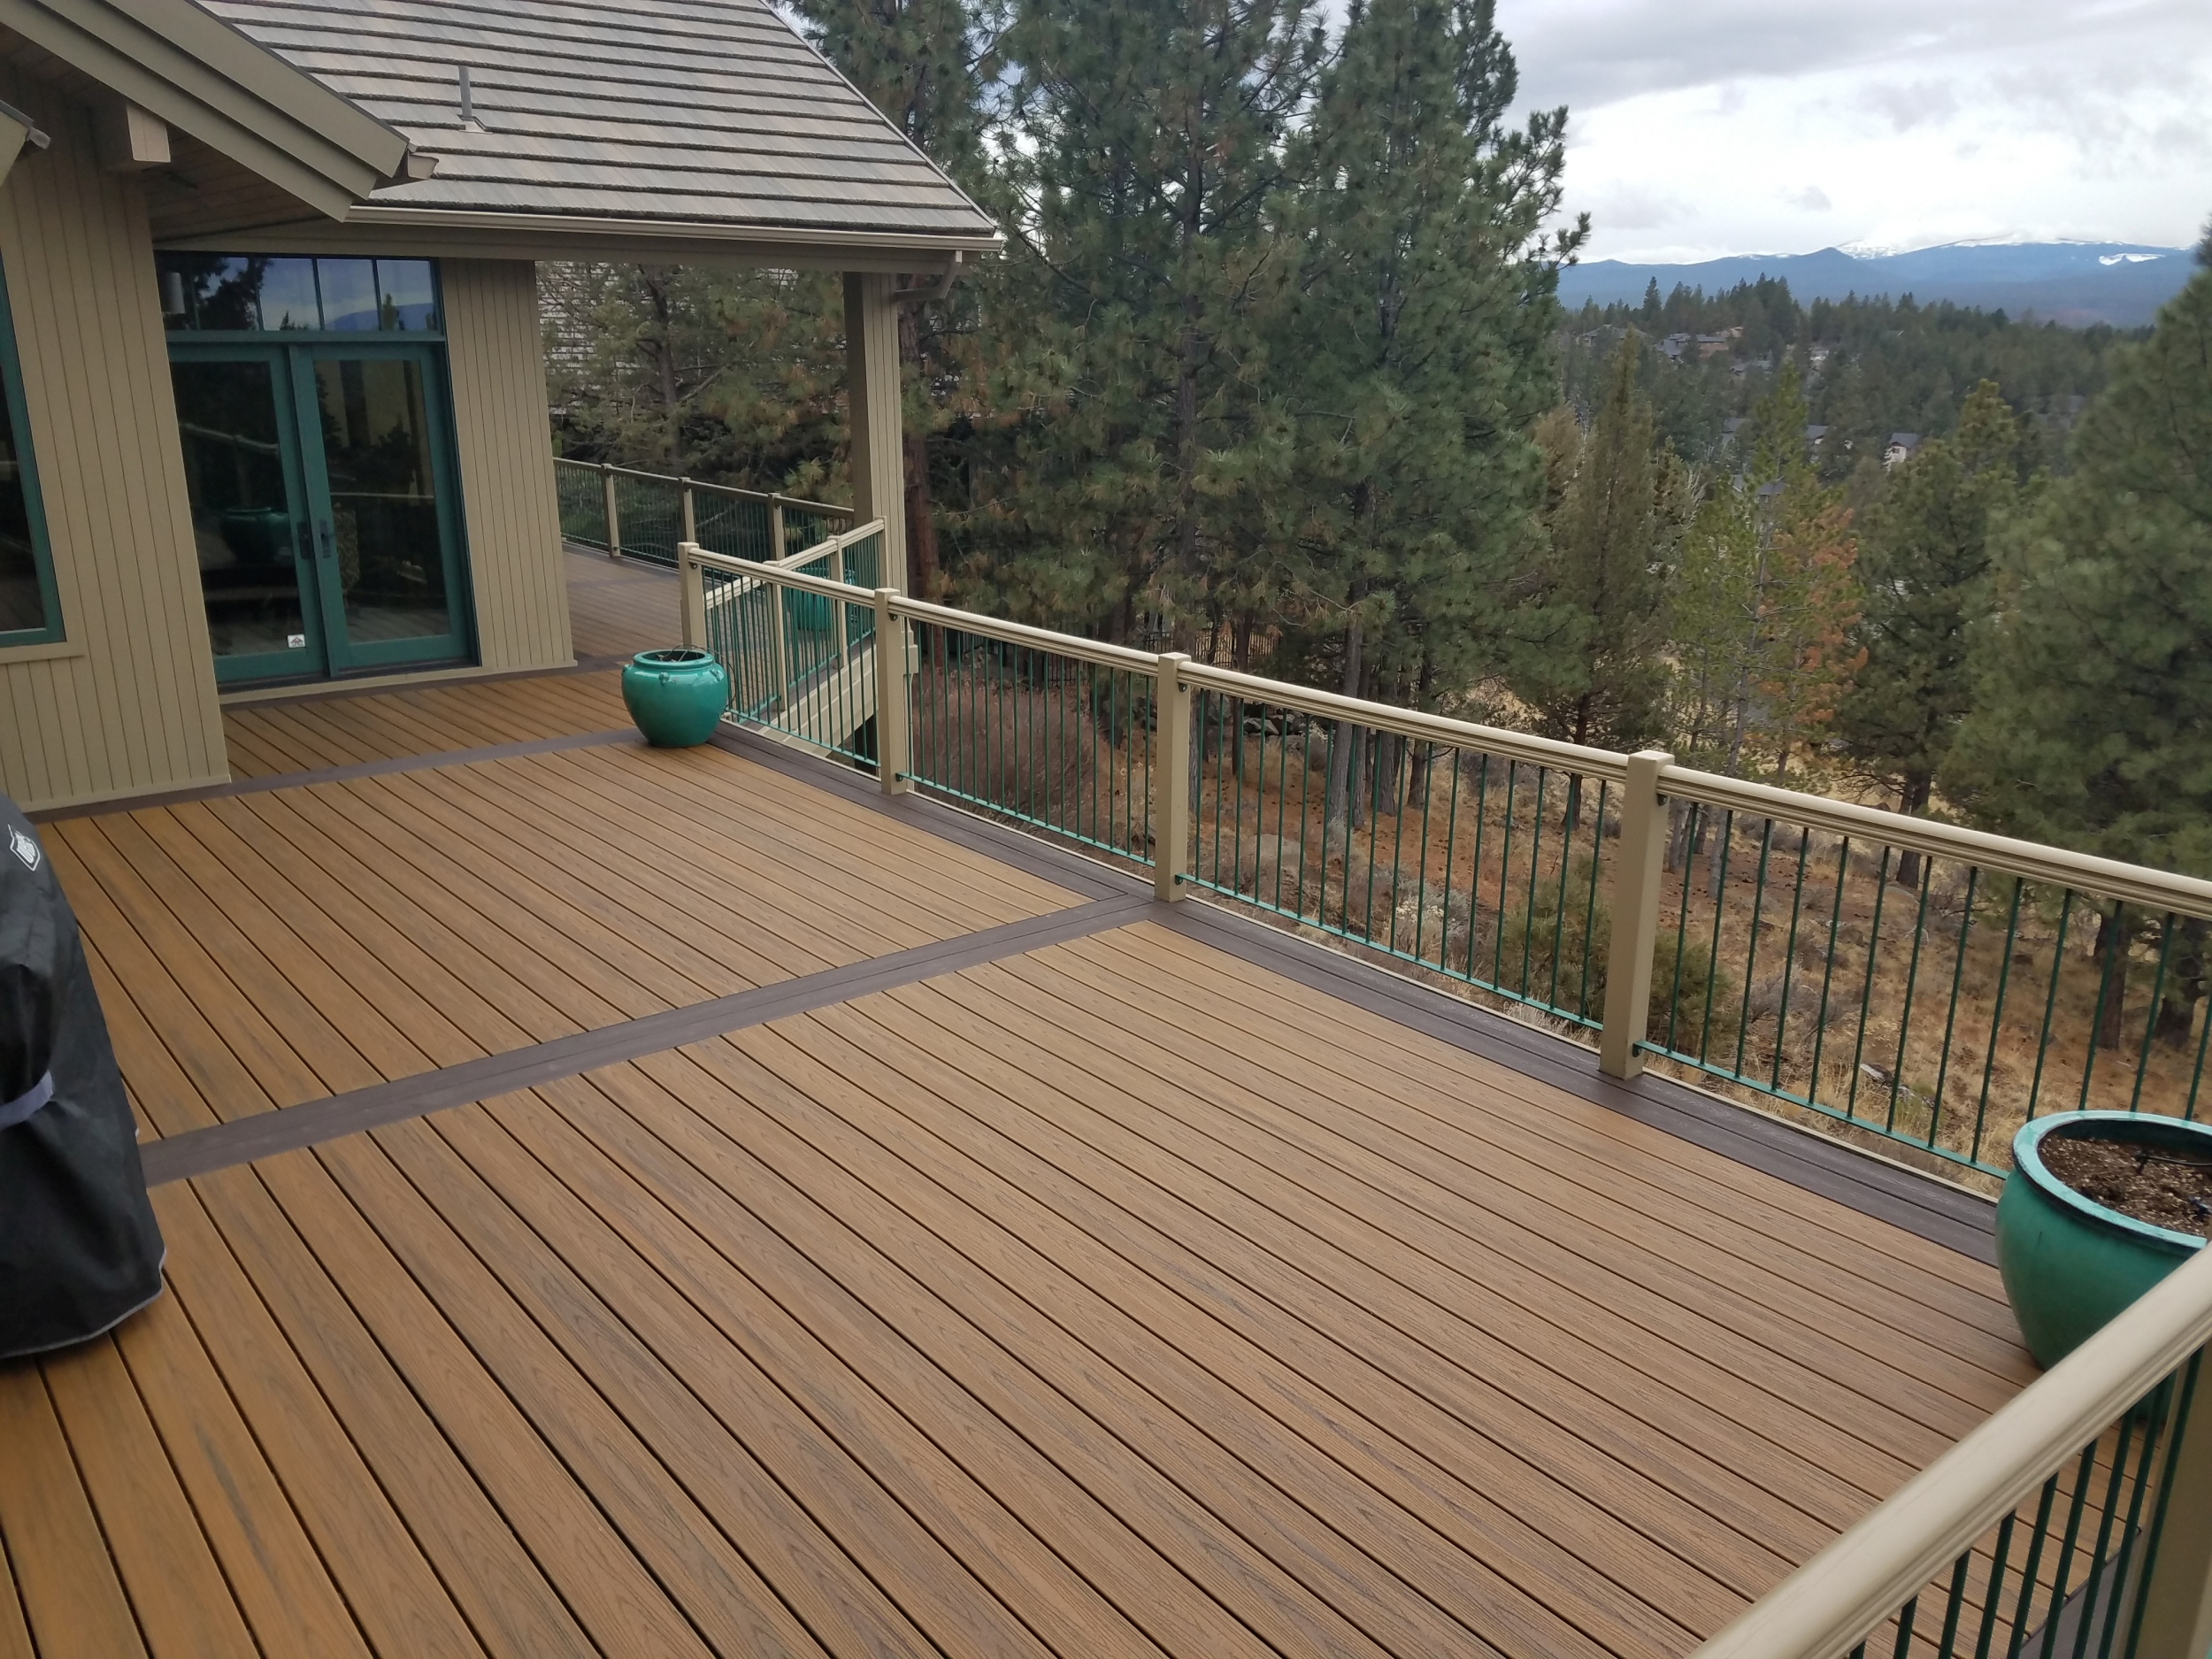 Trex Transcend with full double borders. Awbrey Butte, Bend Oregon